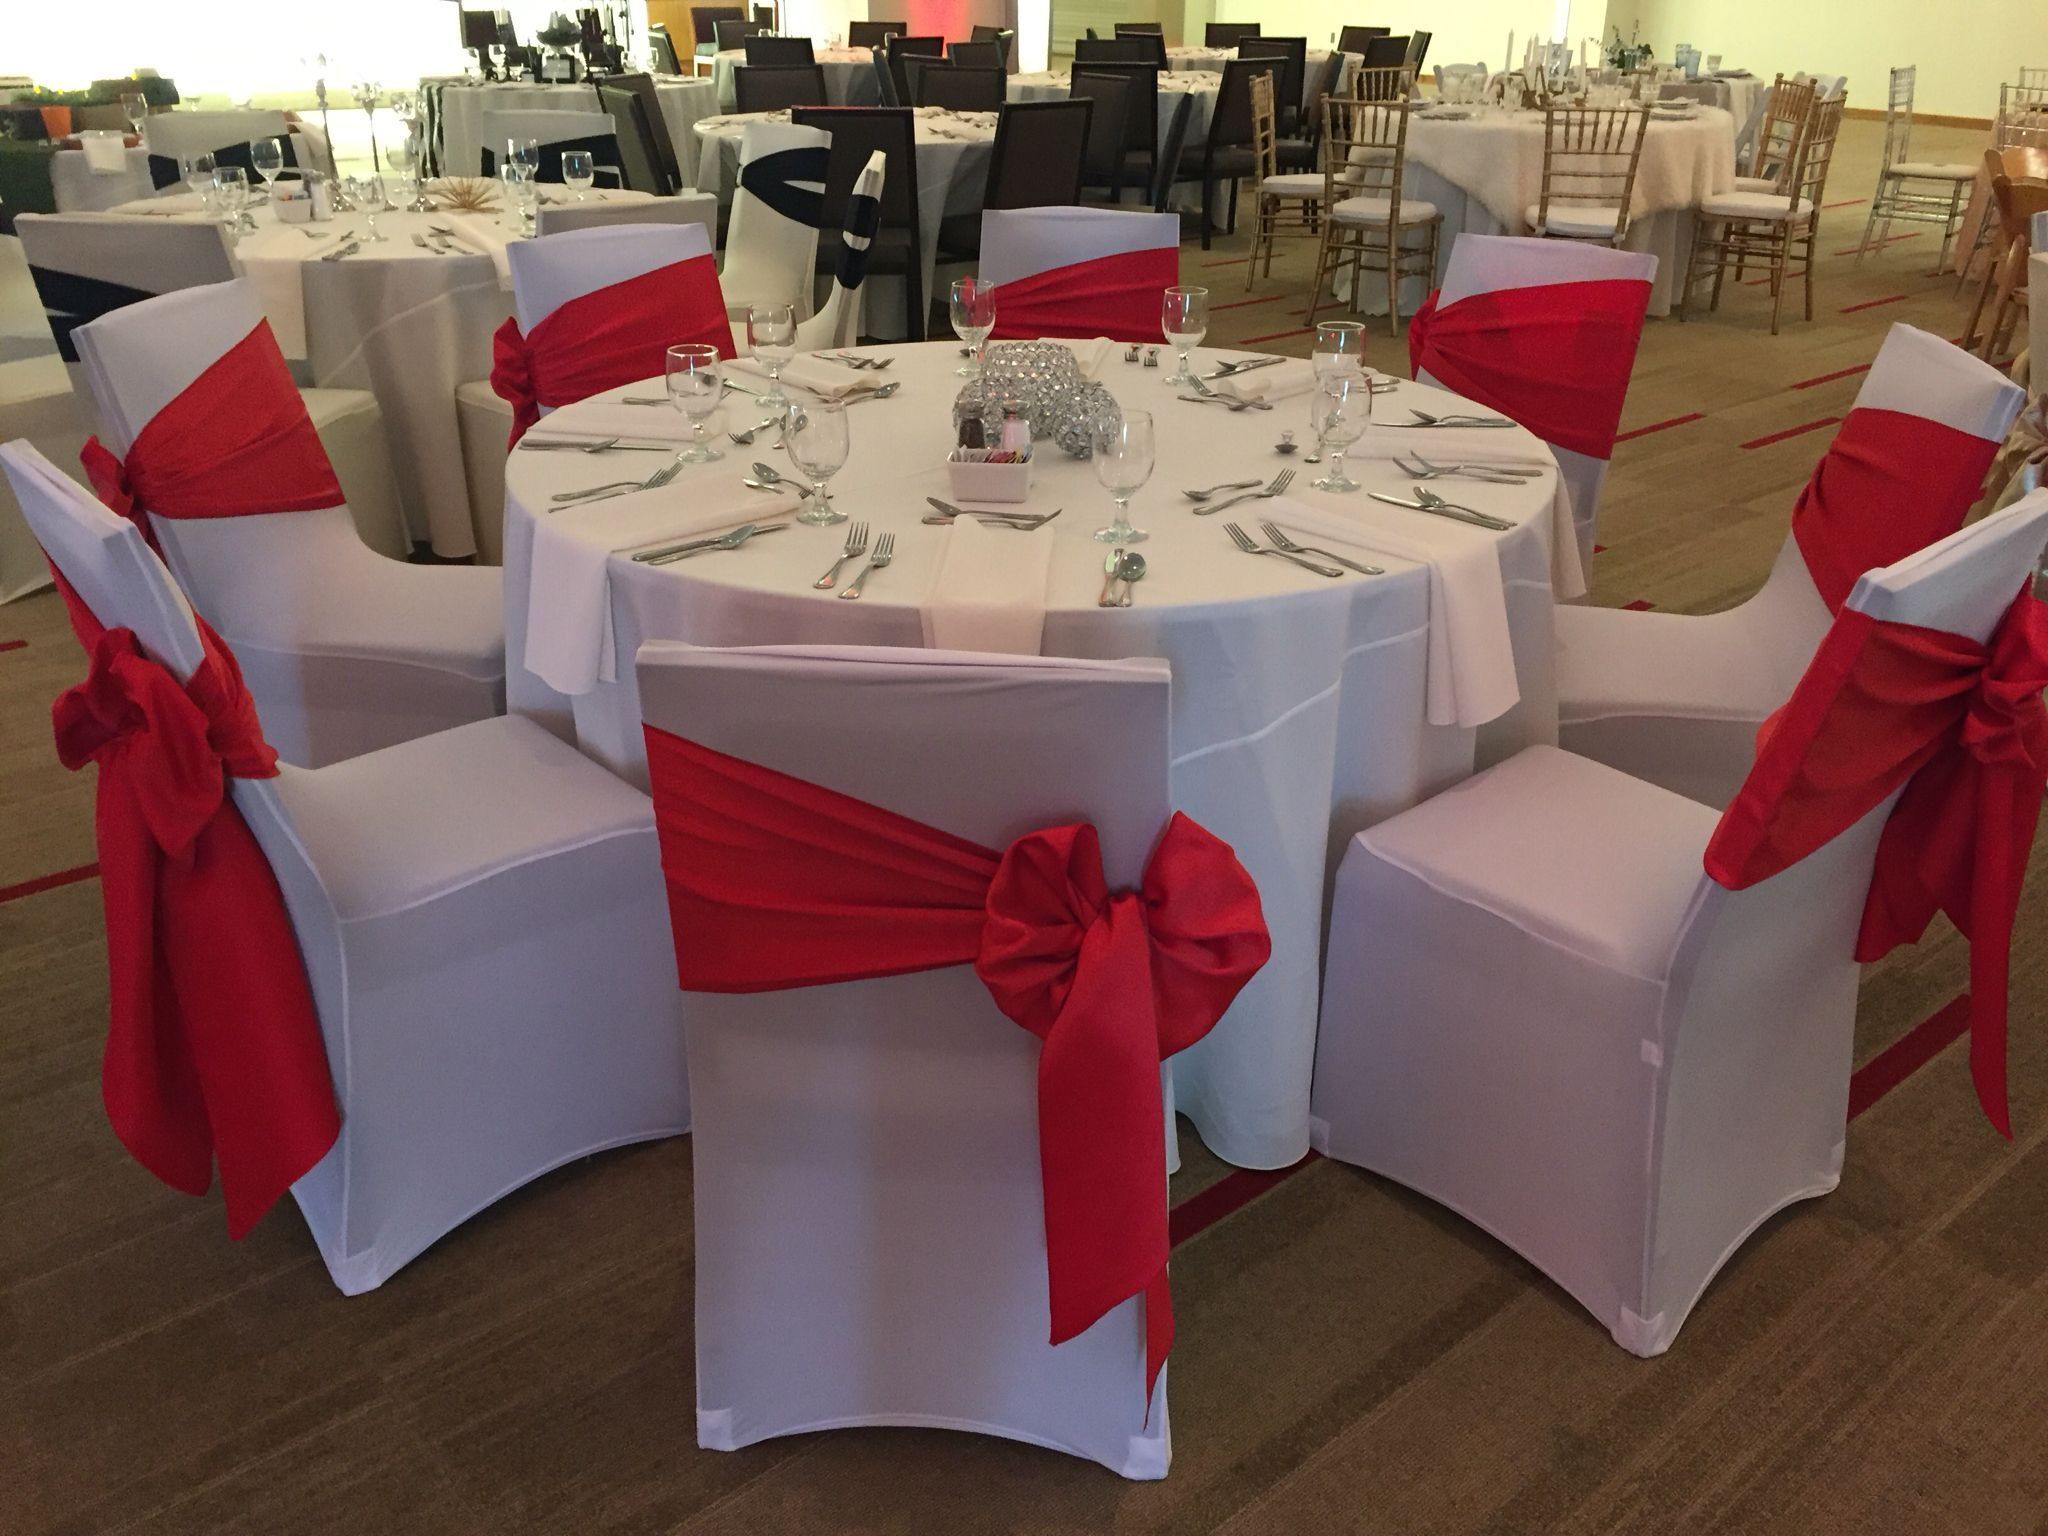 Marvelous Pin On Spandex Chair Covers Gmtry Best Dining Table And Chair Ideas Images Gmtryco